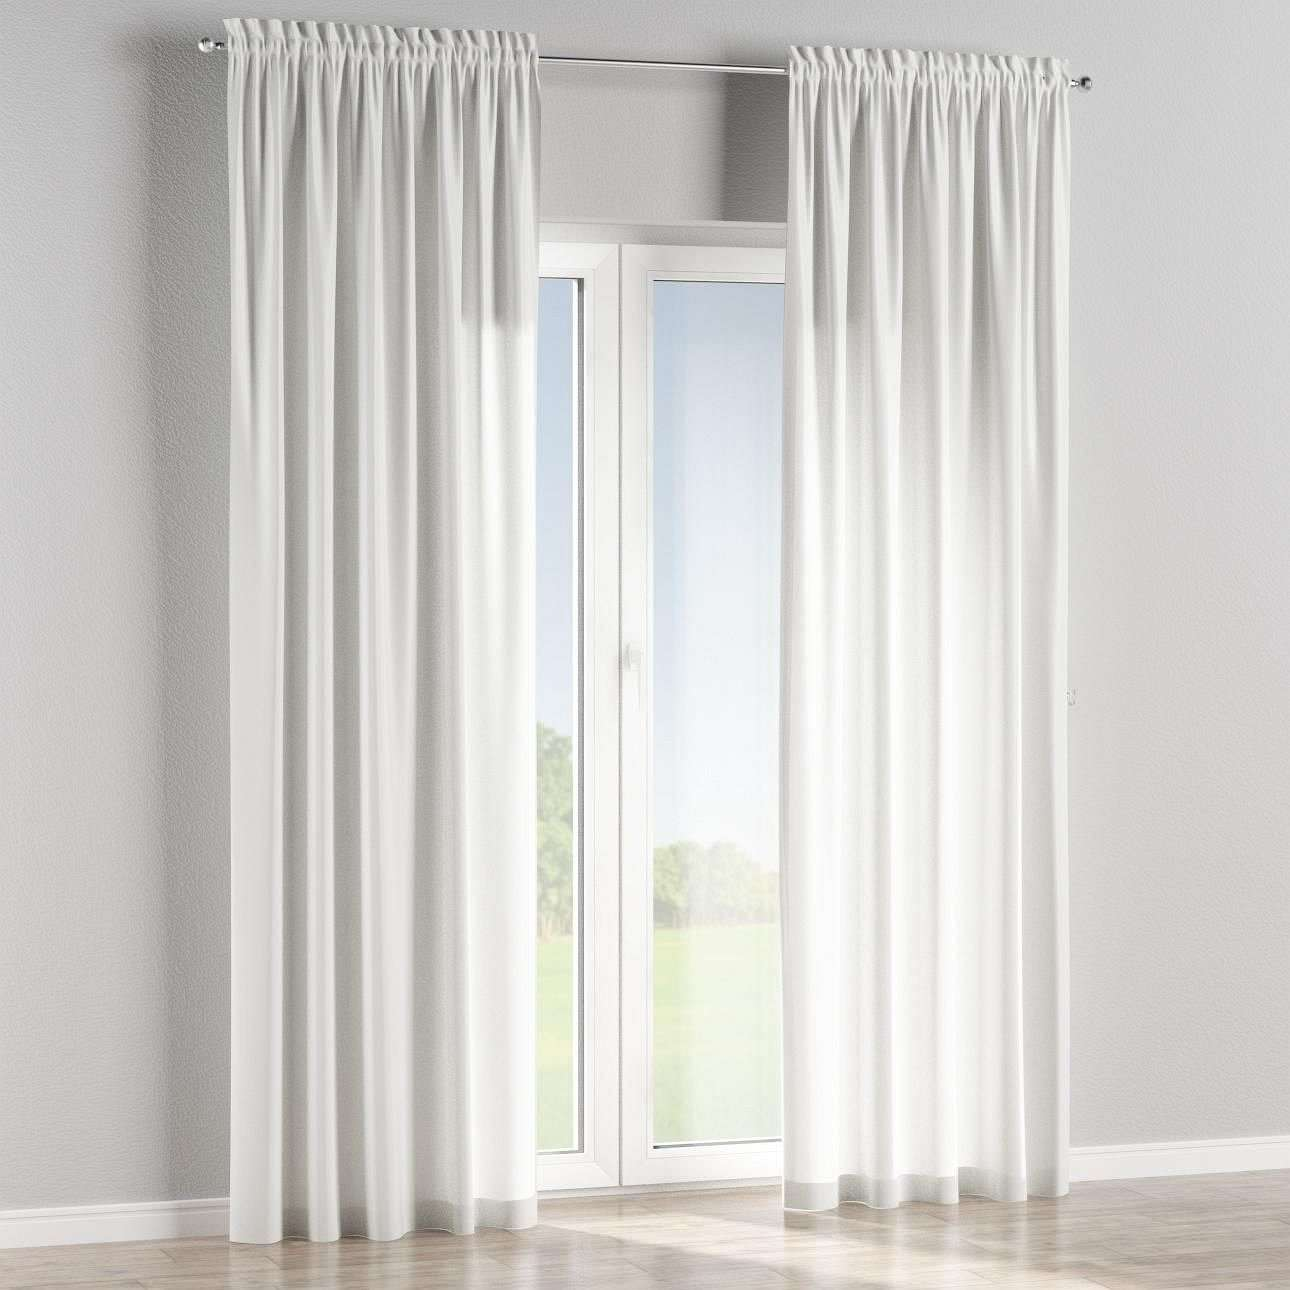 Slot and frill lined curtains in collection Norge, fabric: 140-97